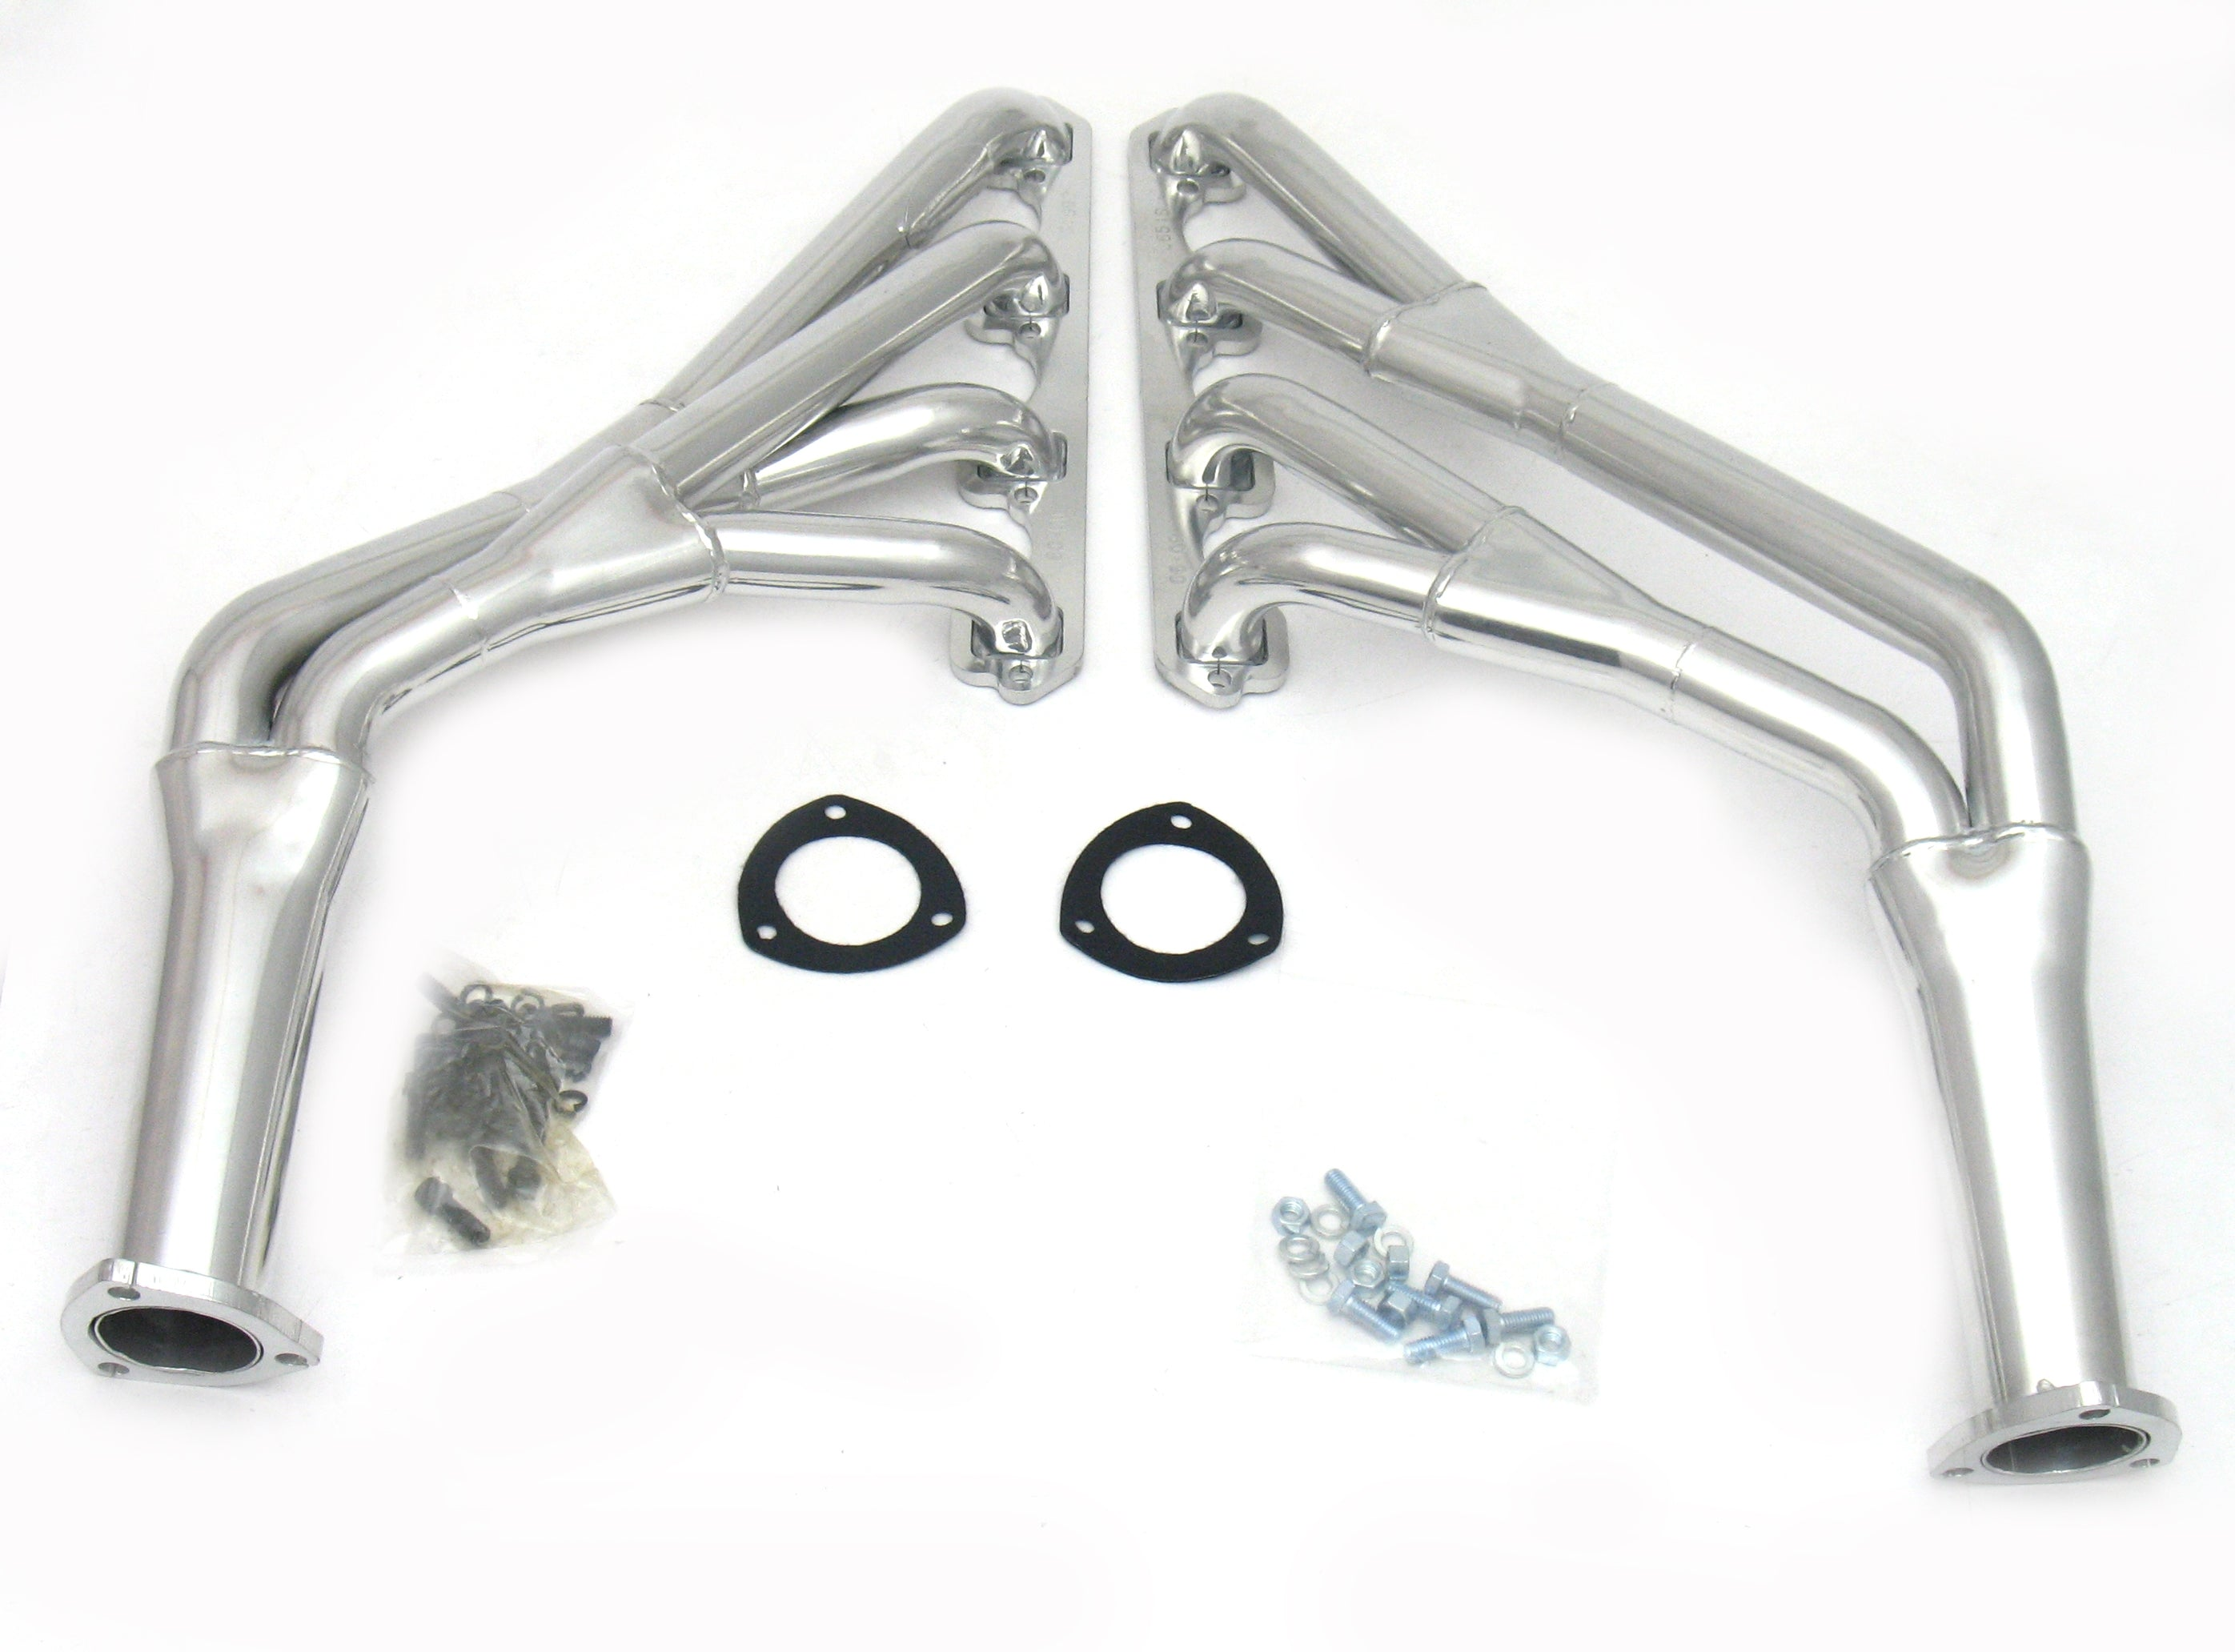 "JBA Performance Exhaust 6651SJS 1 1/2"" Long Tube Stainless Steel 65-70 Mustang 289/302 Tri-Y Silver Ceramic"